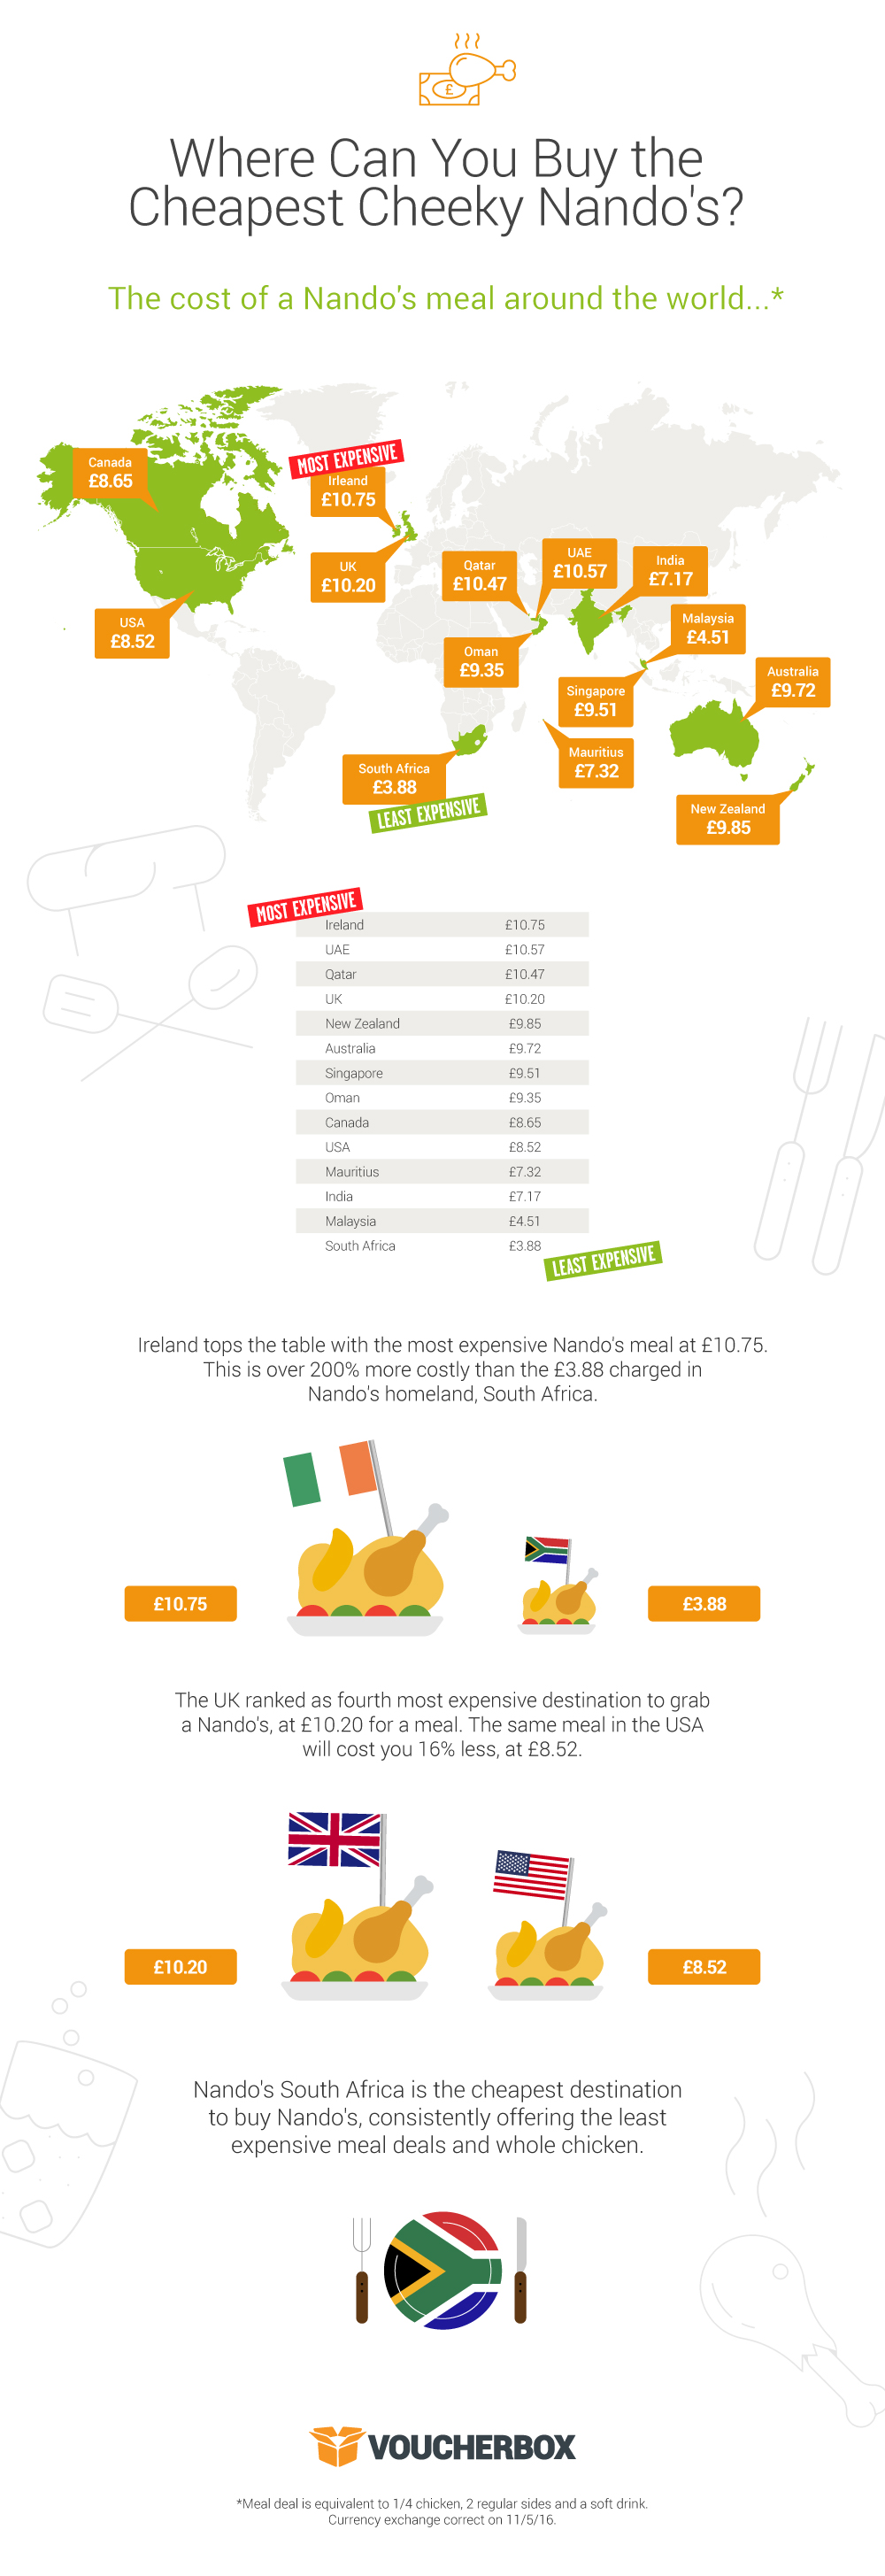 %name Taking The Peri Peri: Nando's 20% More Expensive In The UK Than US